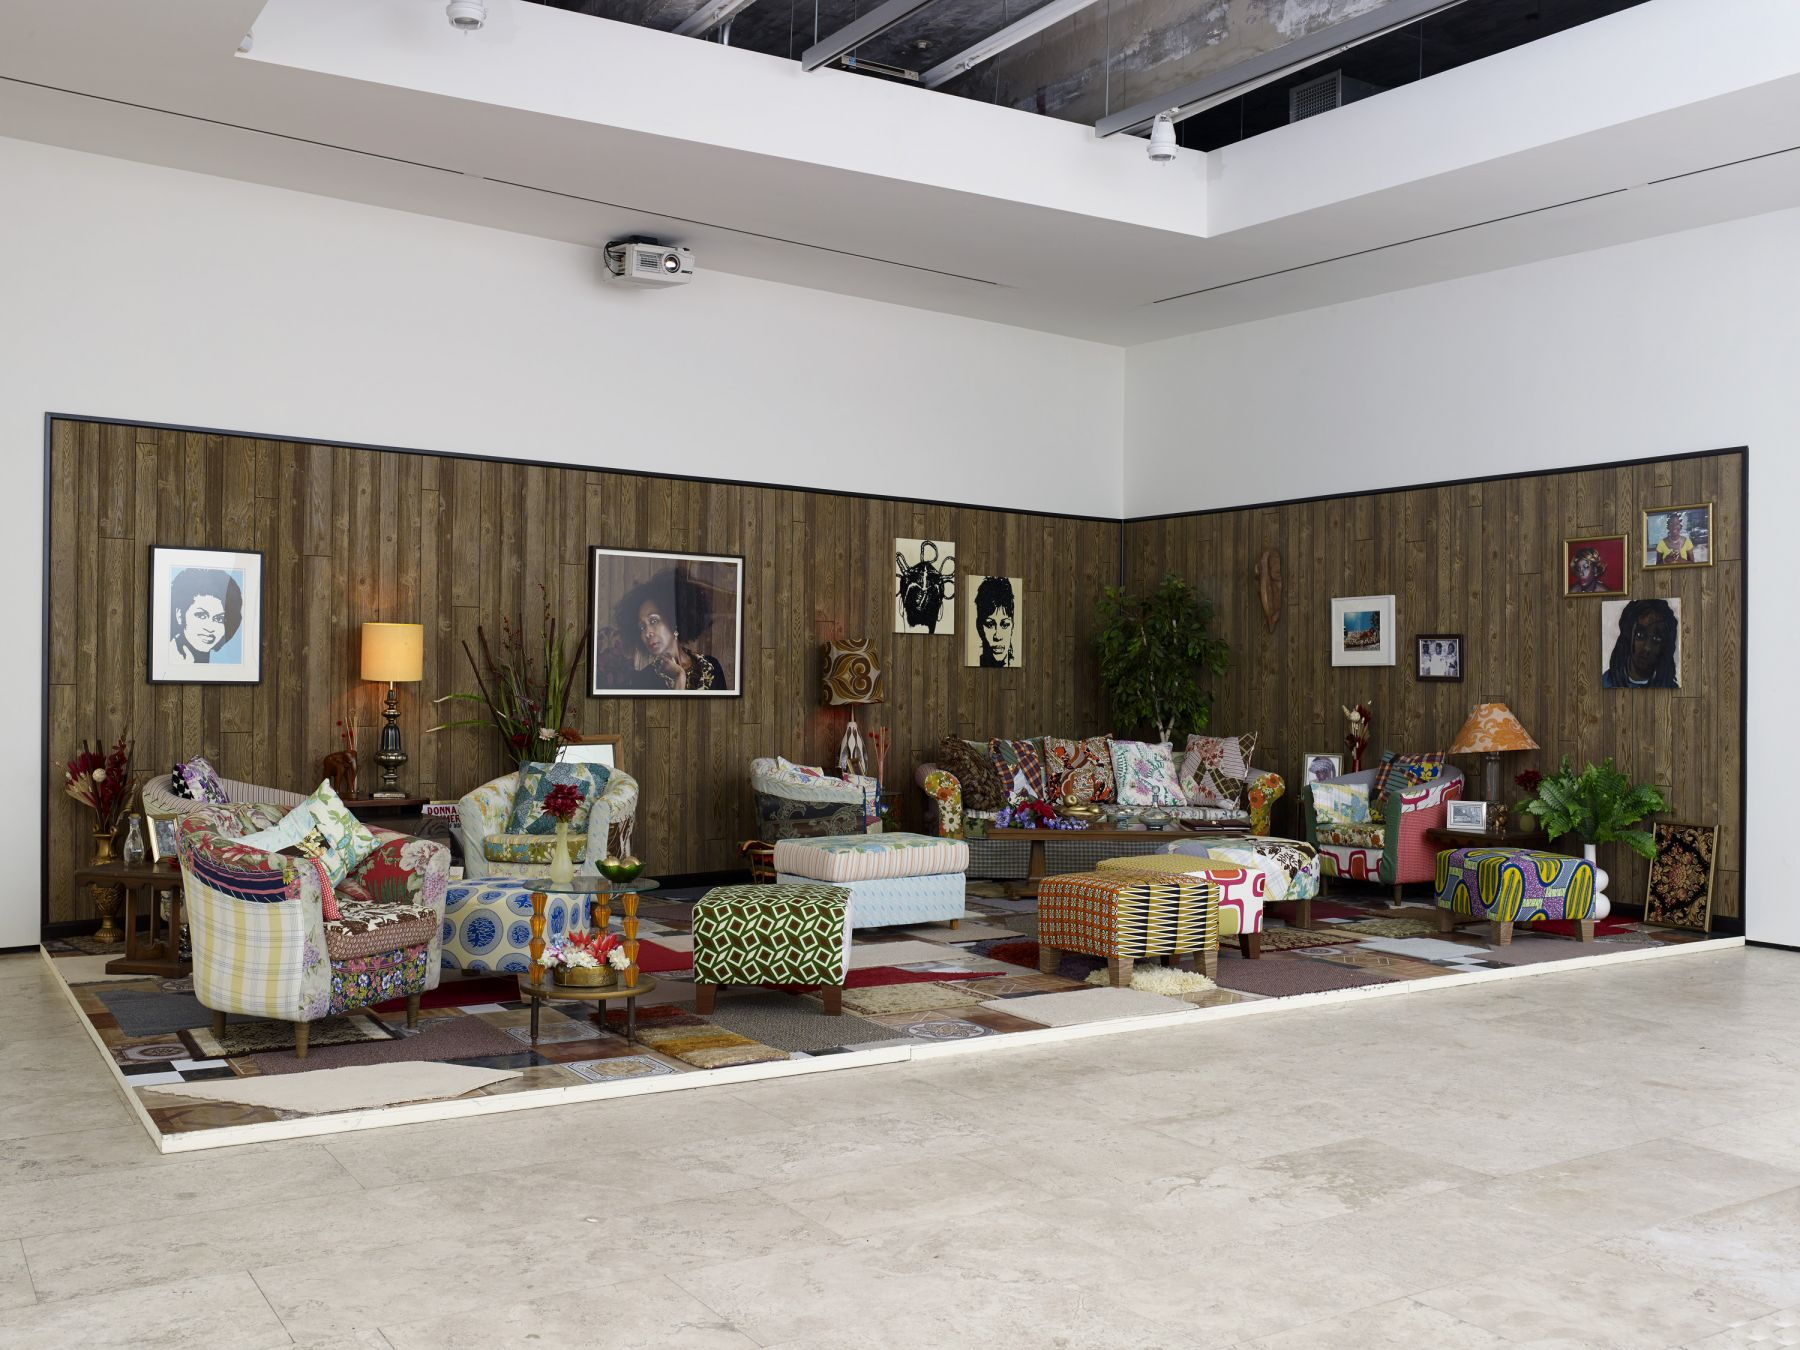 MICKALENE THOMAS: How to Organize a Room Around a Striking Piece of Art